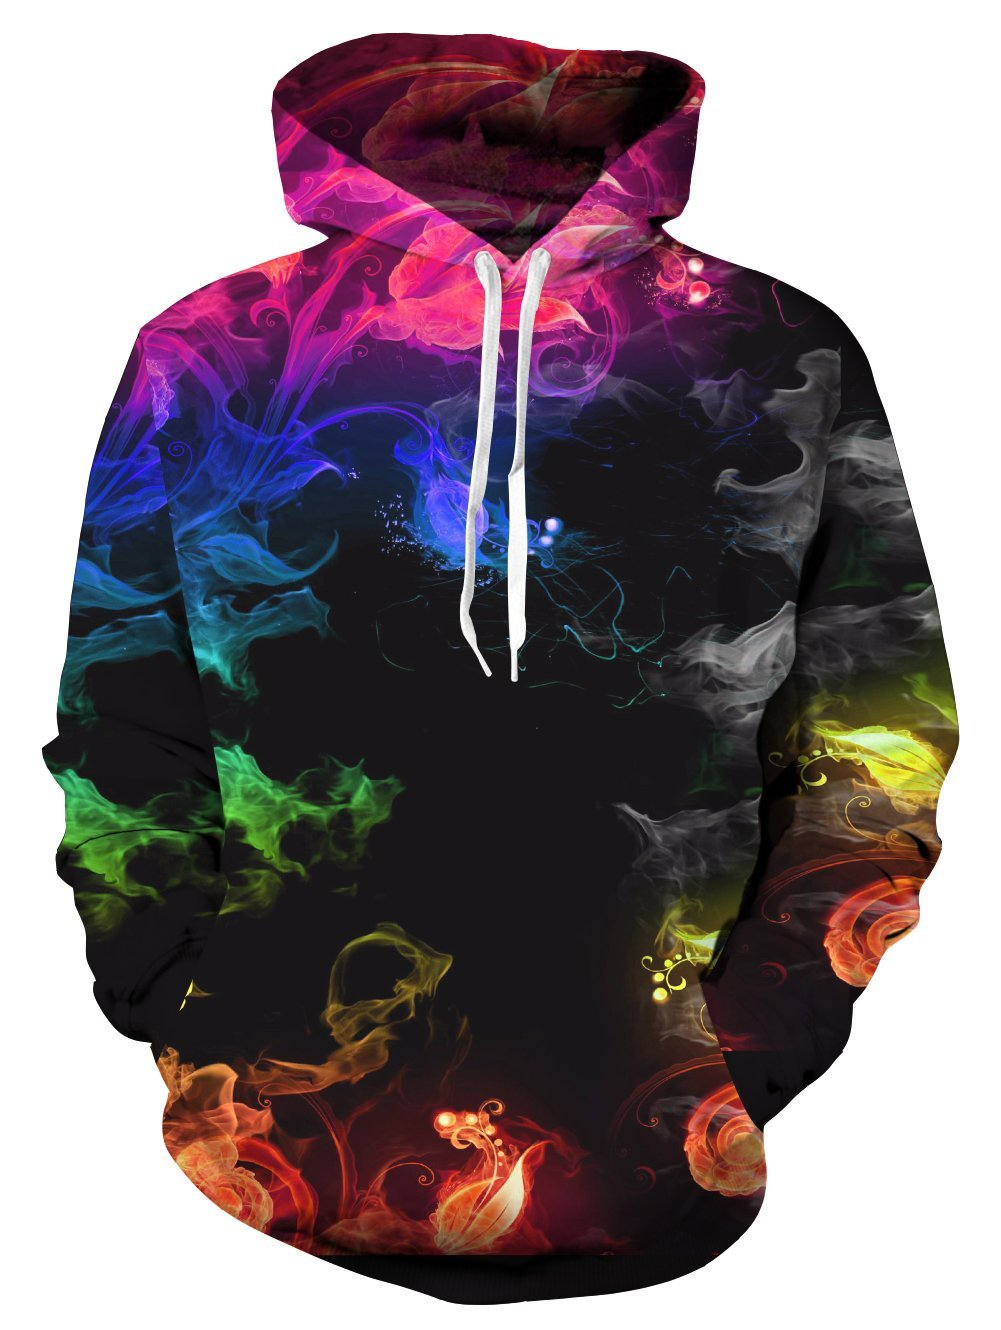 Fanient Pullover Smoke Graphic Sweatshirts Hooded with Big Pockets and Fleece Plush Lining for Men